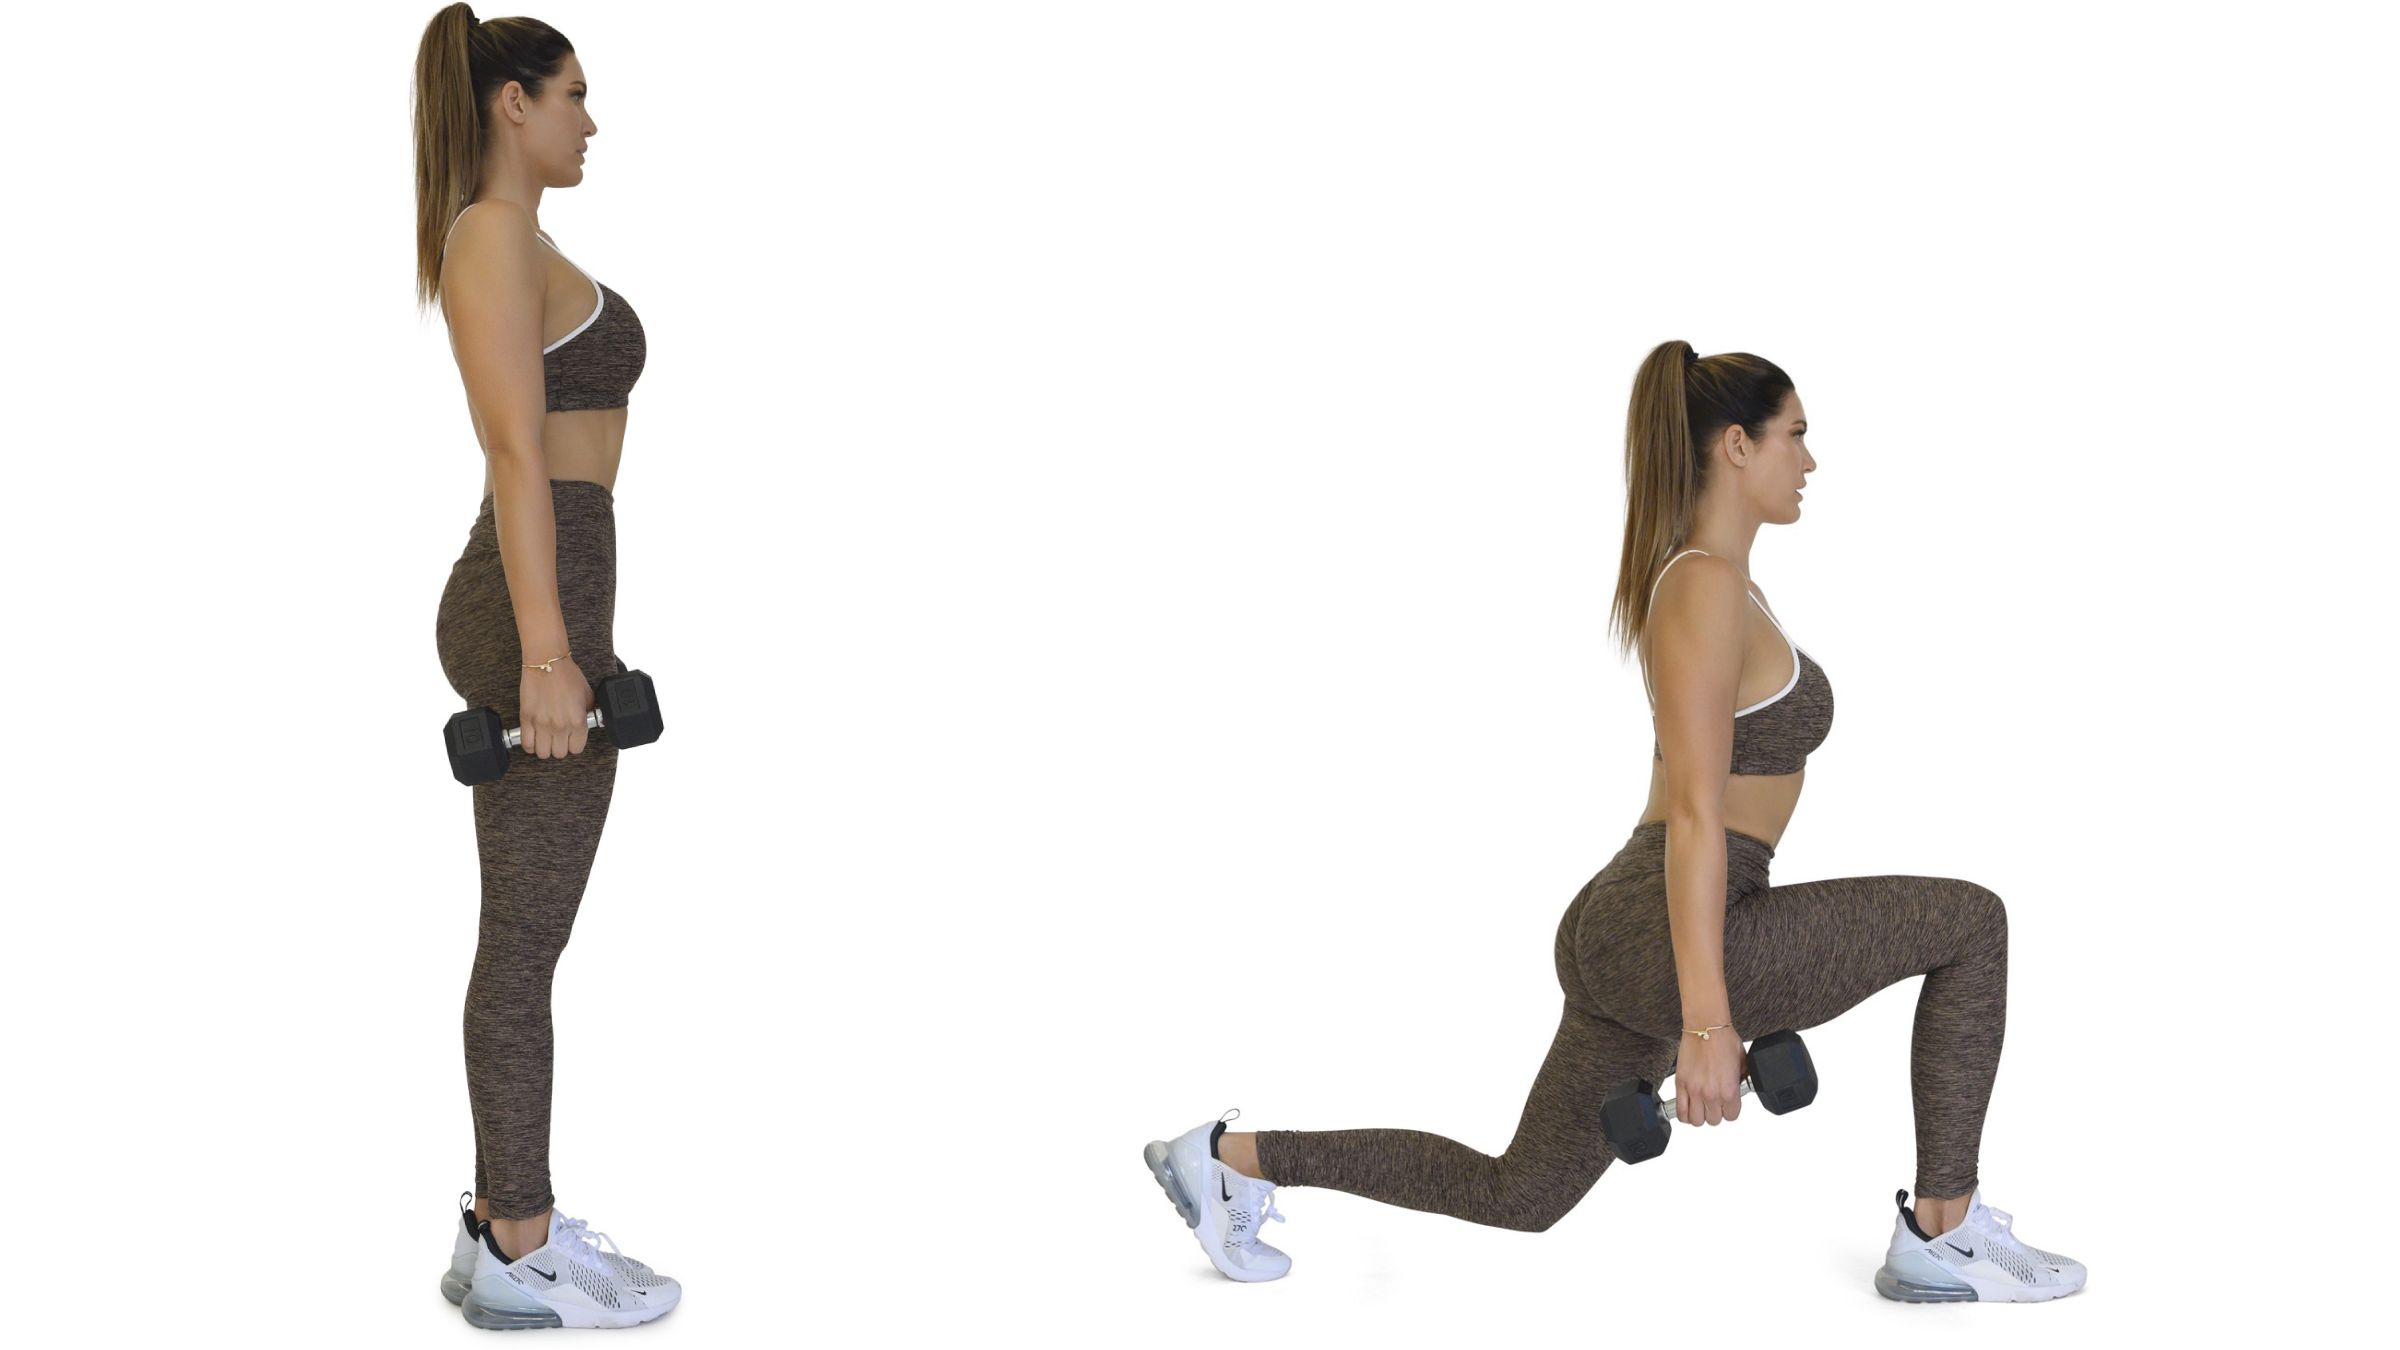 Woman demonstrating forward lunge